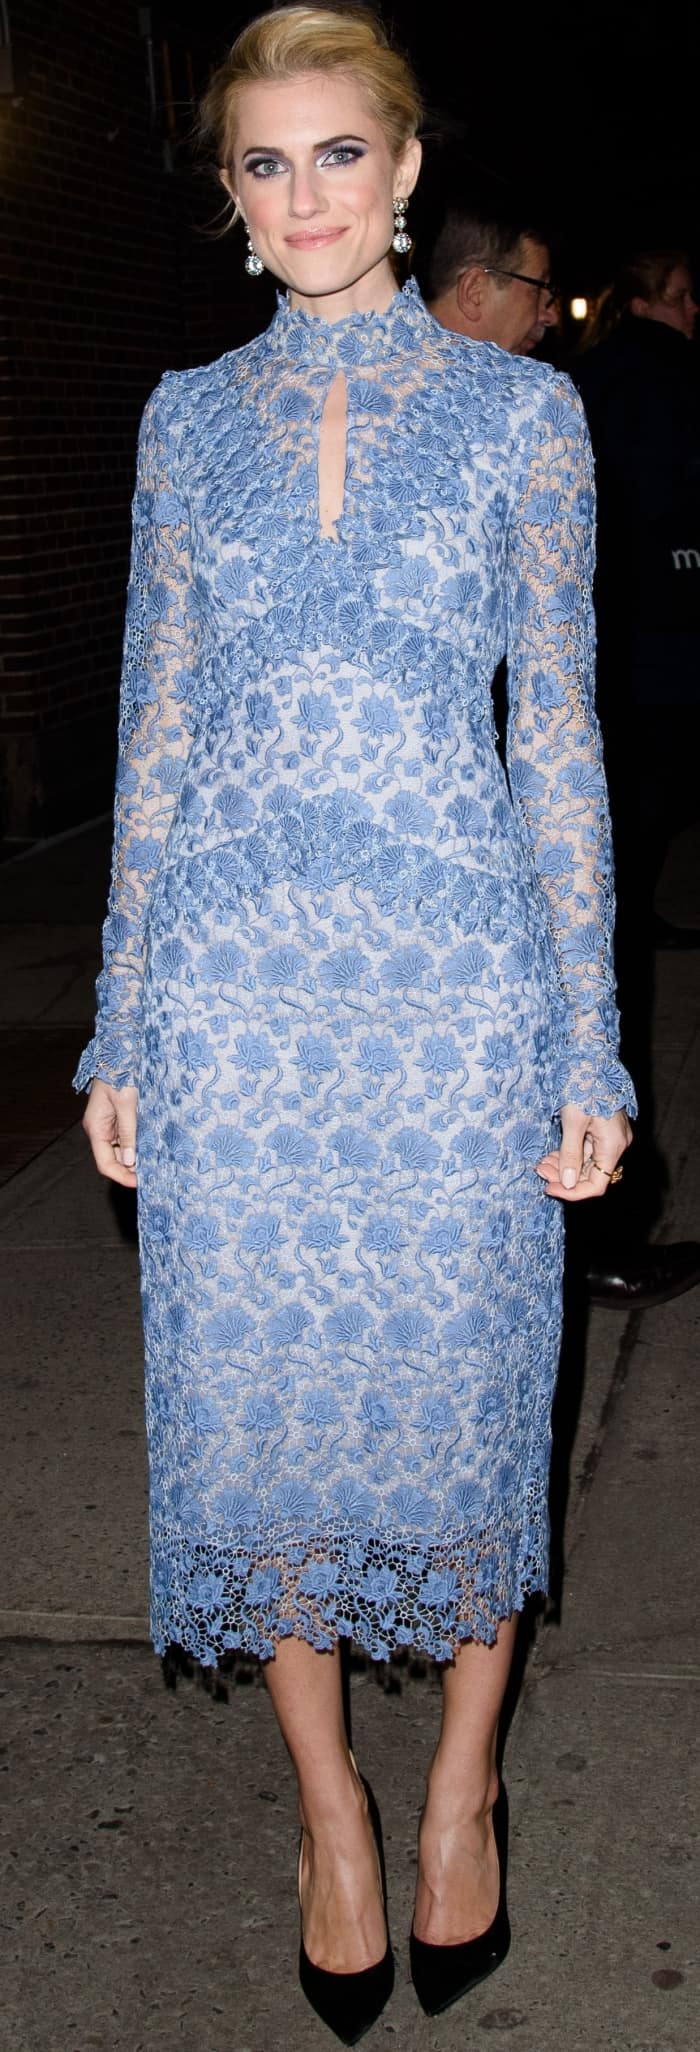 Allison Williams wearing an Erdem dress and Mariela Montiel black pumps at 'The Late Show with Stephen Colbert'